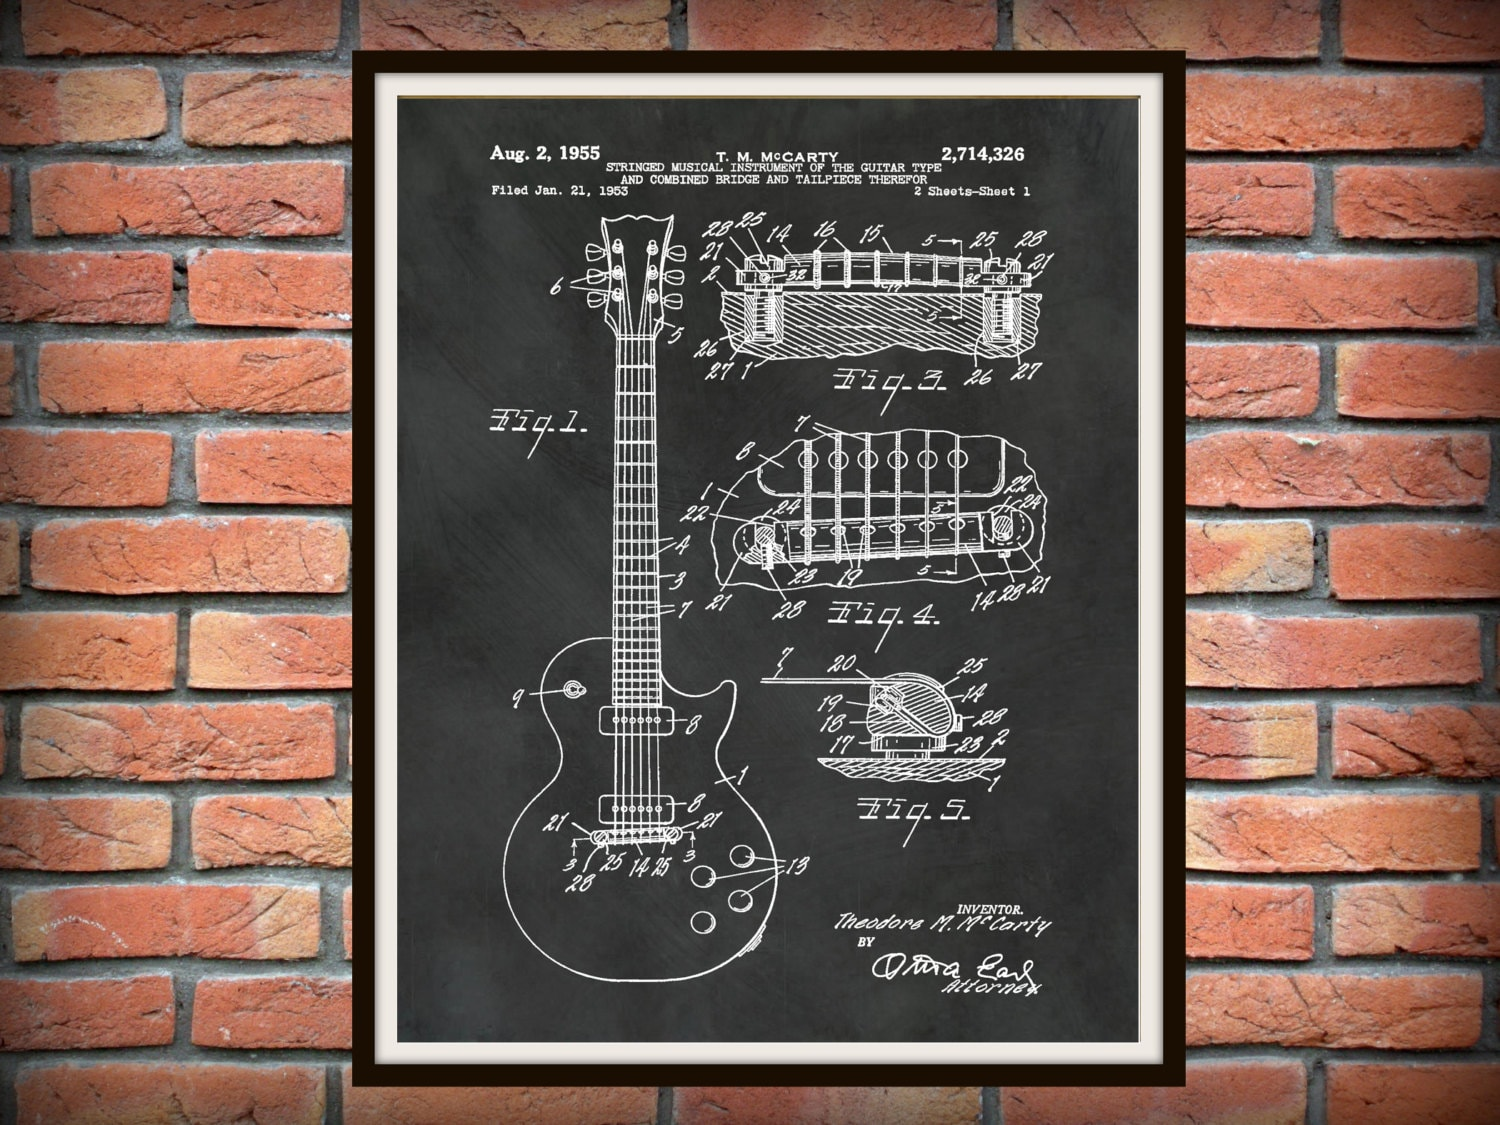 Patent 1955 Gibson Les Paul Guitar Designed By T McCarty Rock Band Instrument